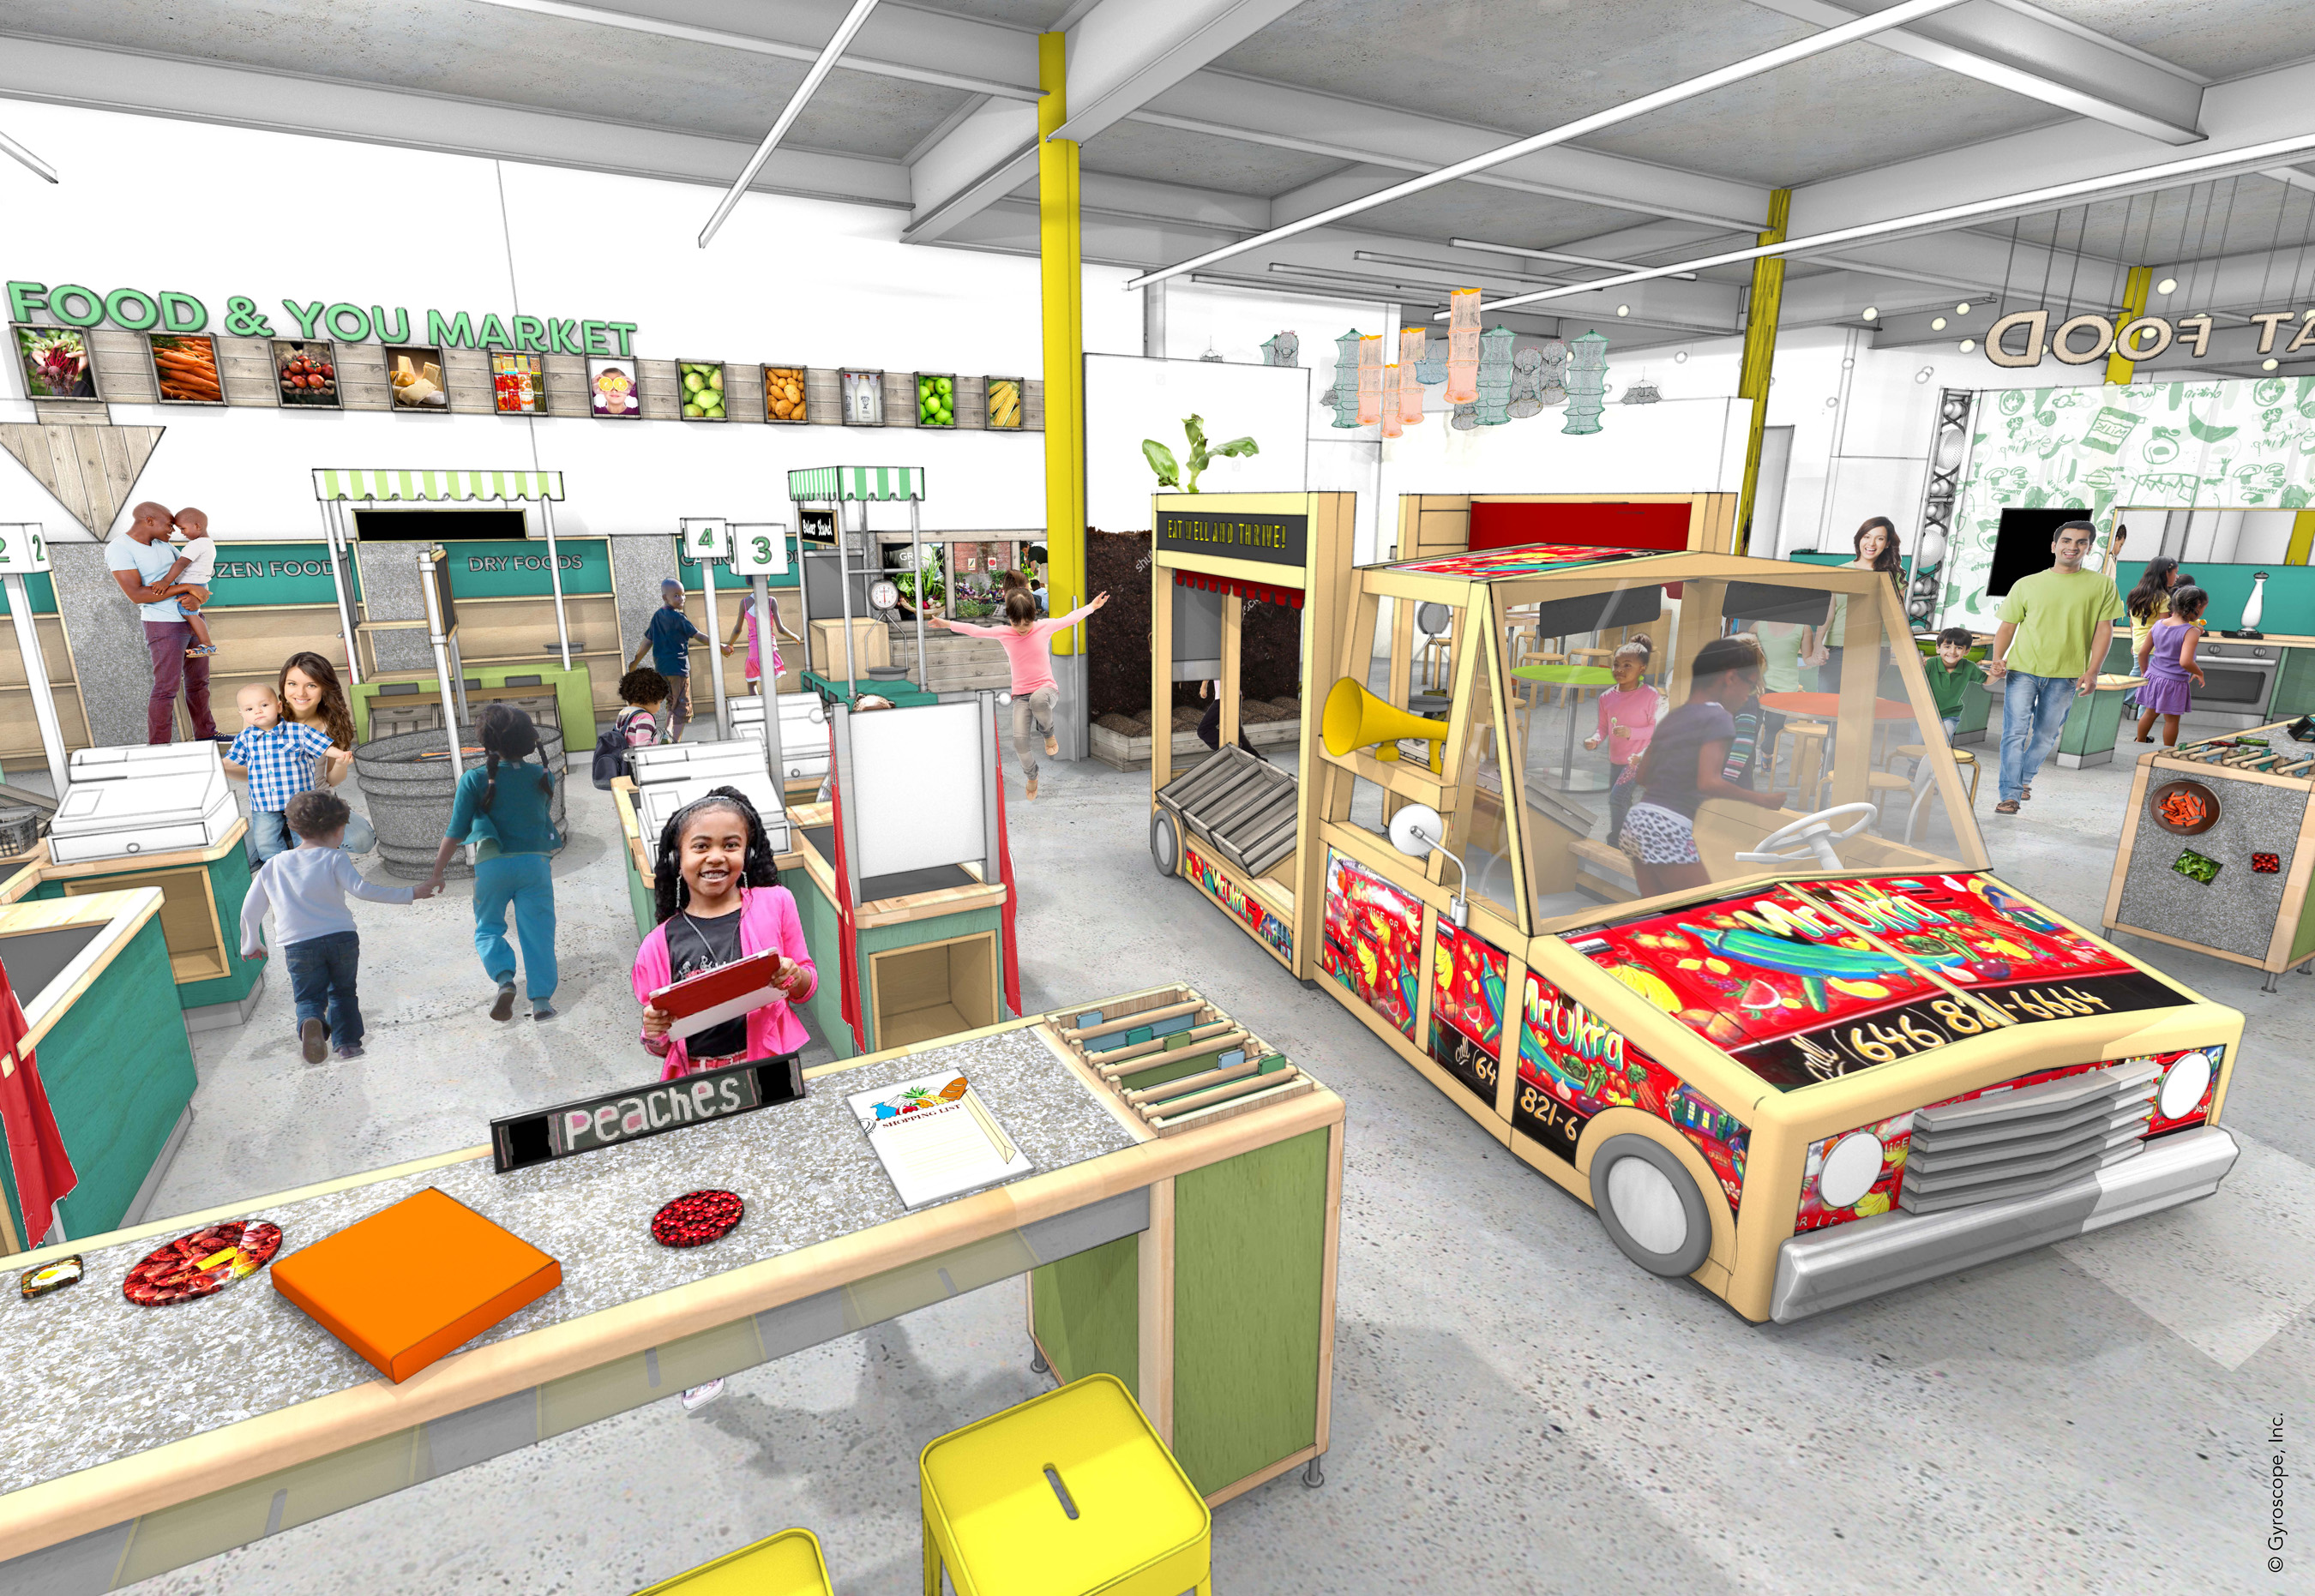 The new Louisiana Children's Museum includes an interactive culinary exhibit gallery called Follow That Food where children will take a playful Louisiana food journey that begins in the state's fields and coastal waters, ventures through the Port of New Orleans and local markets and ultimately lands on the family dinner table. (credit: Mithun)